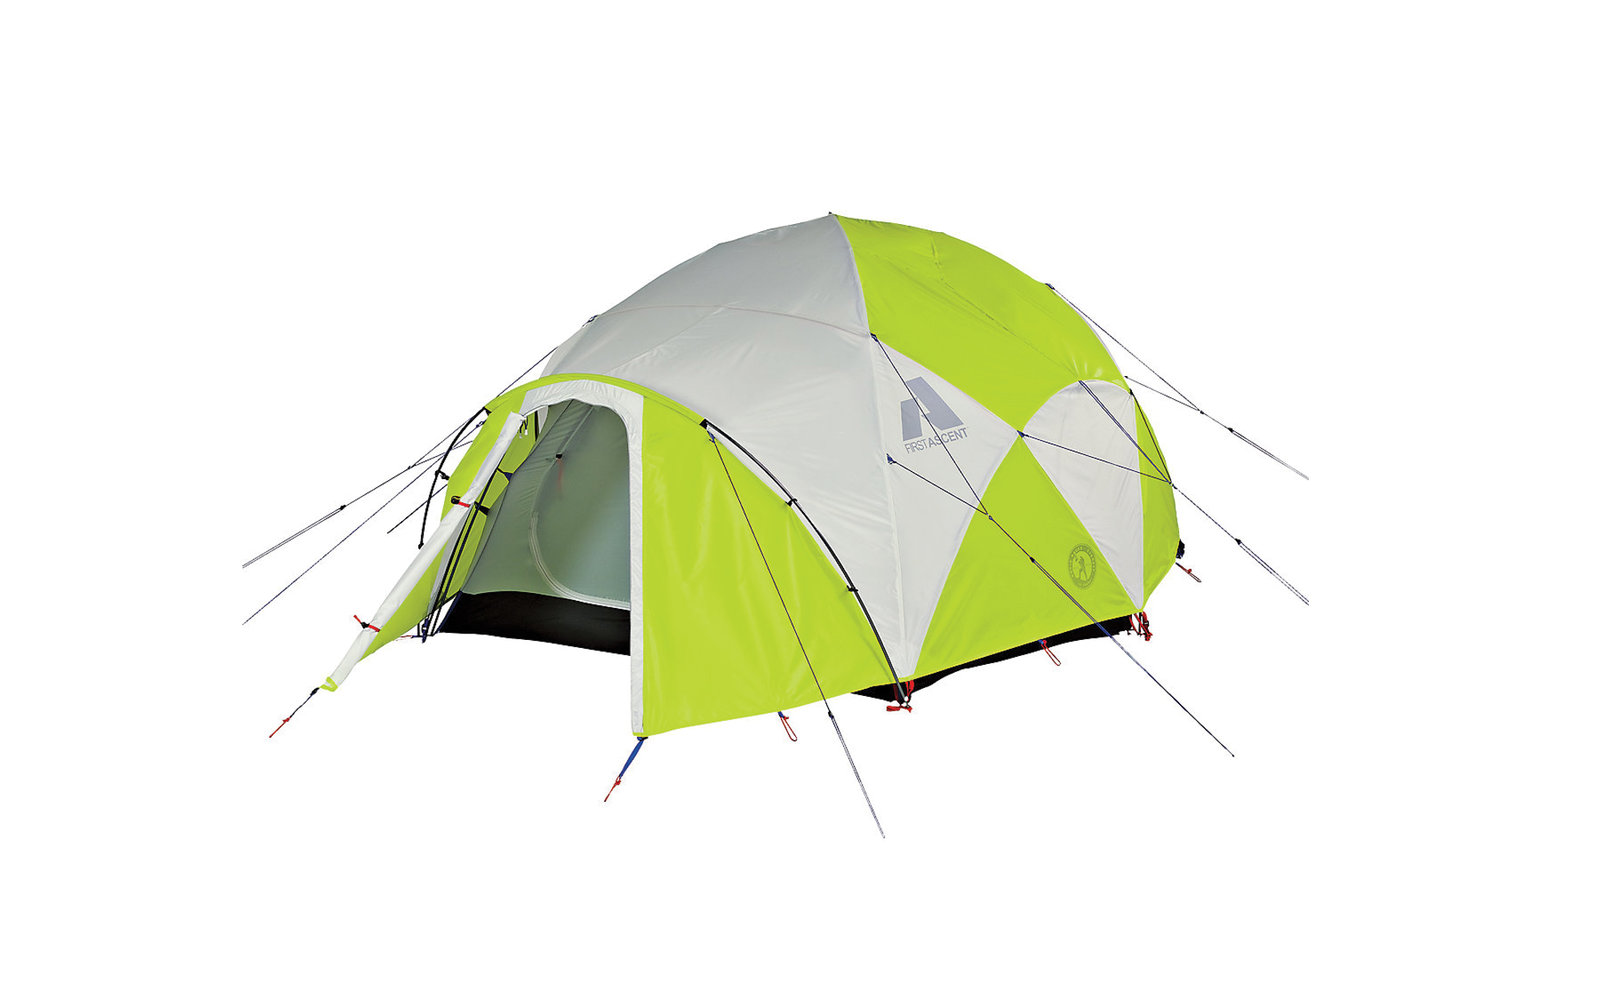 Eddie Bauer Katabatic 3-Person Tent